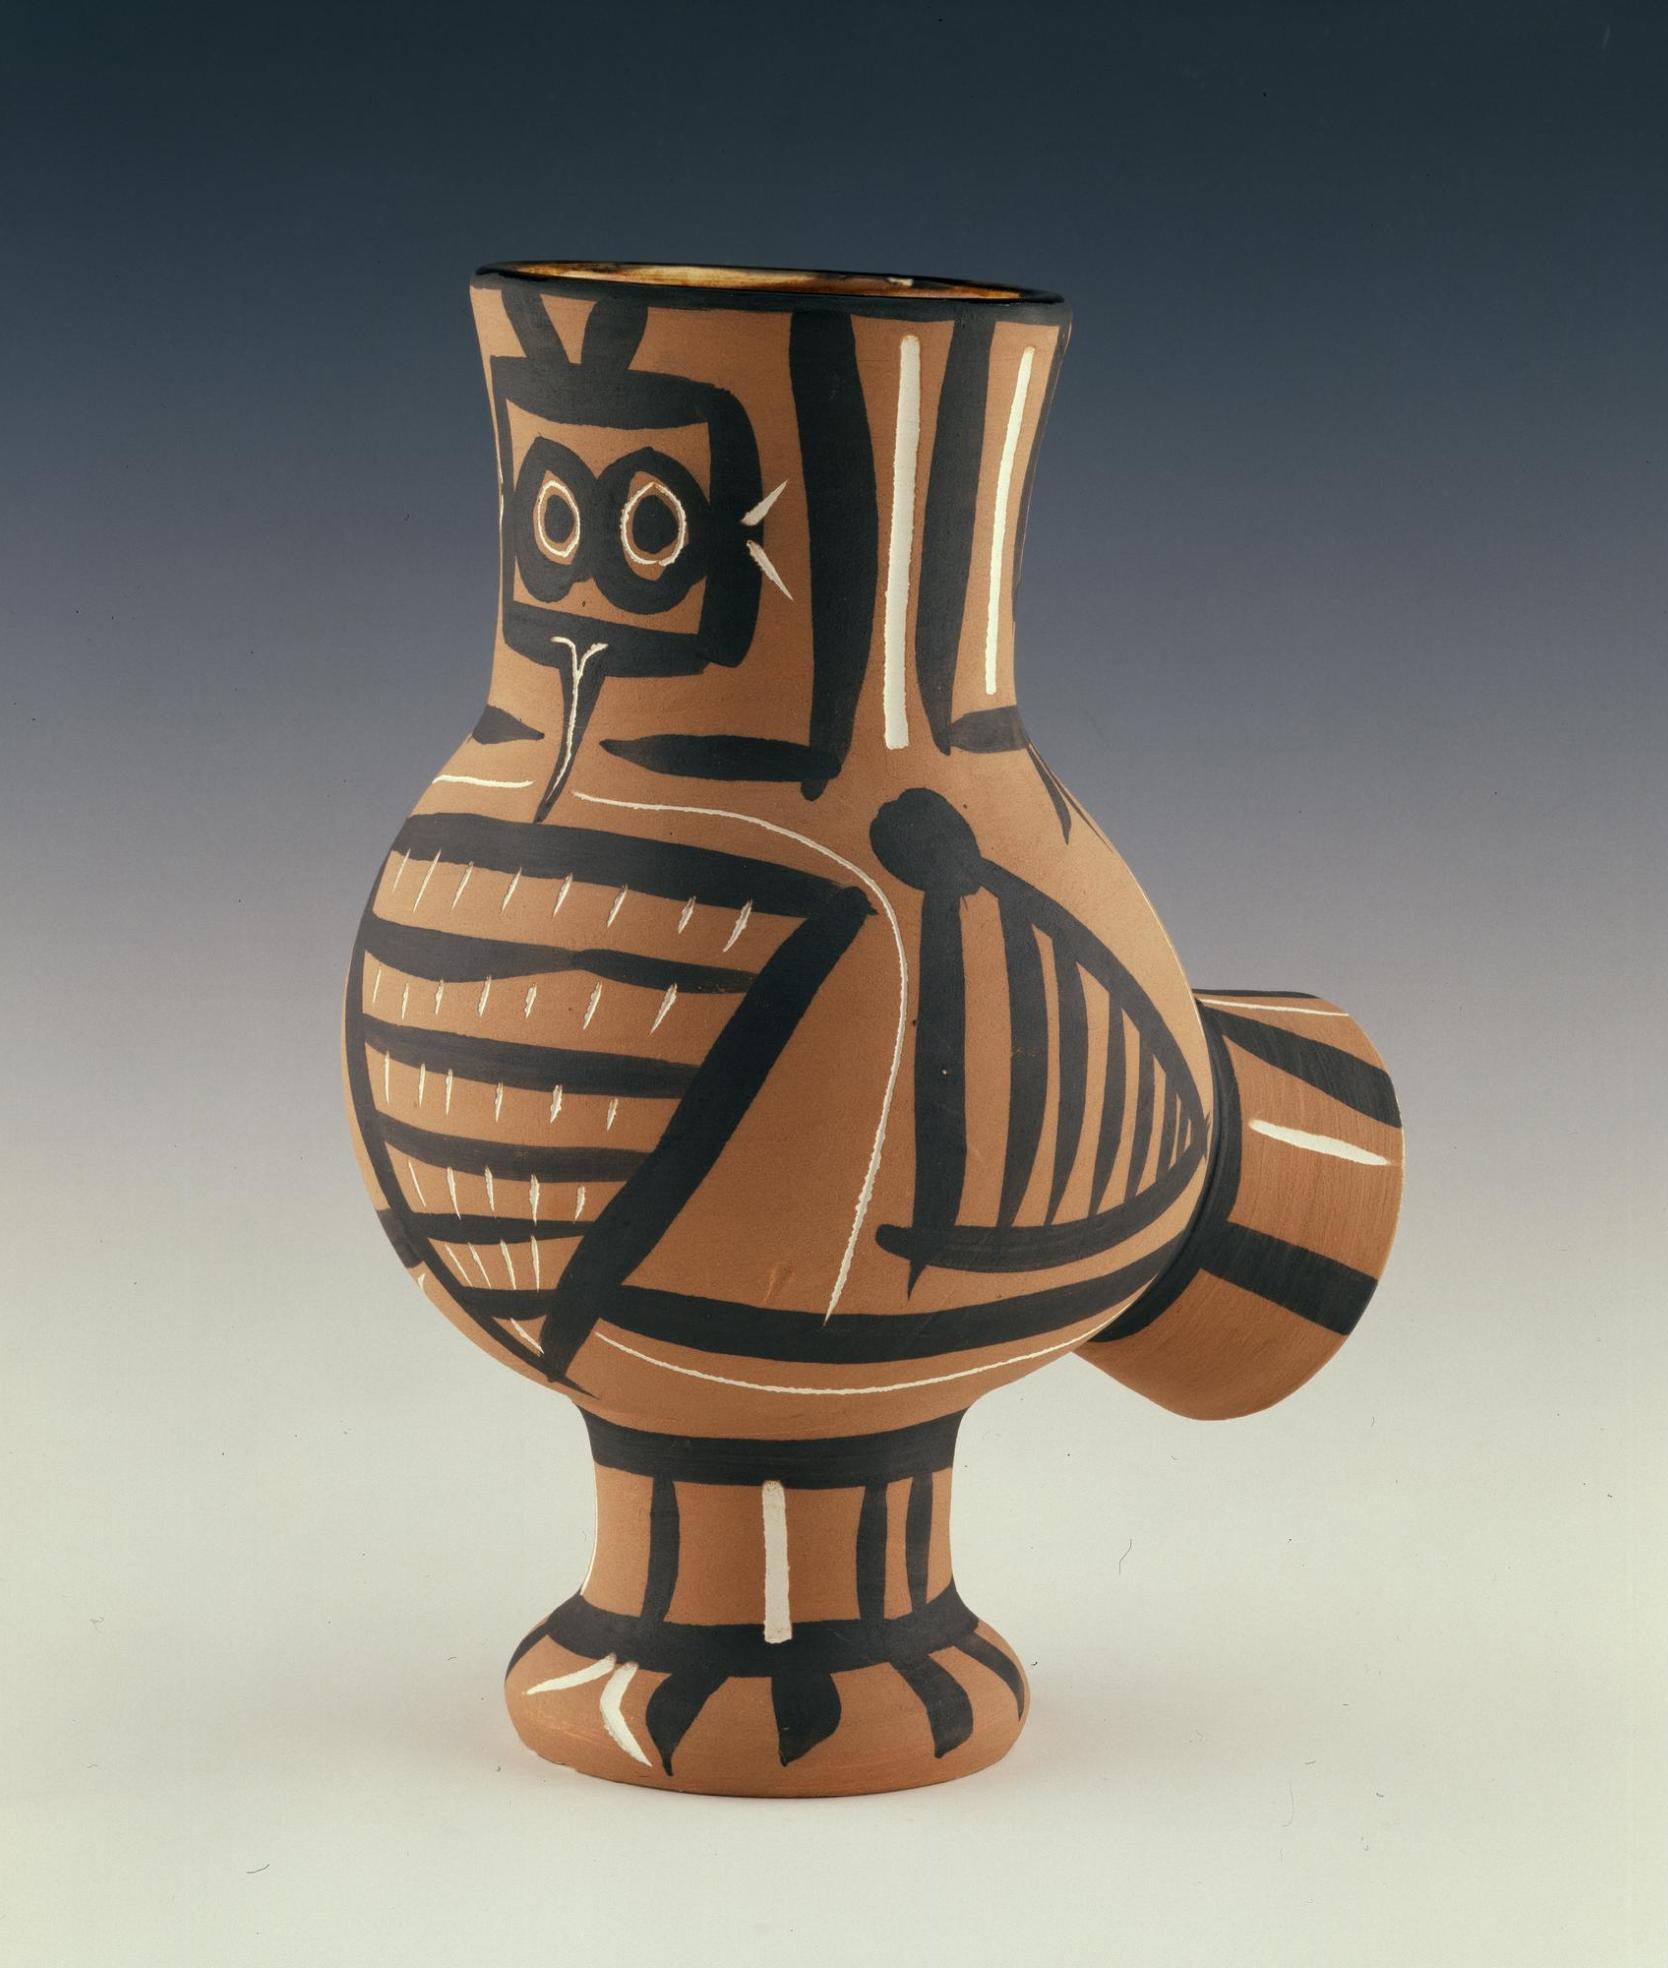 Chouette Mate, an earthenware vase designed by Pablo Picasso (1958)